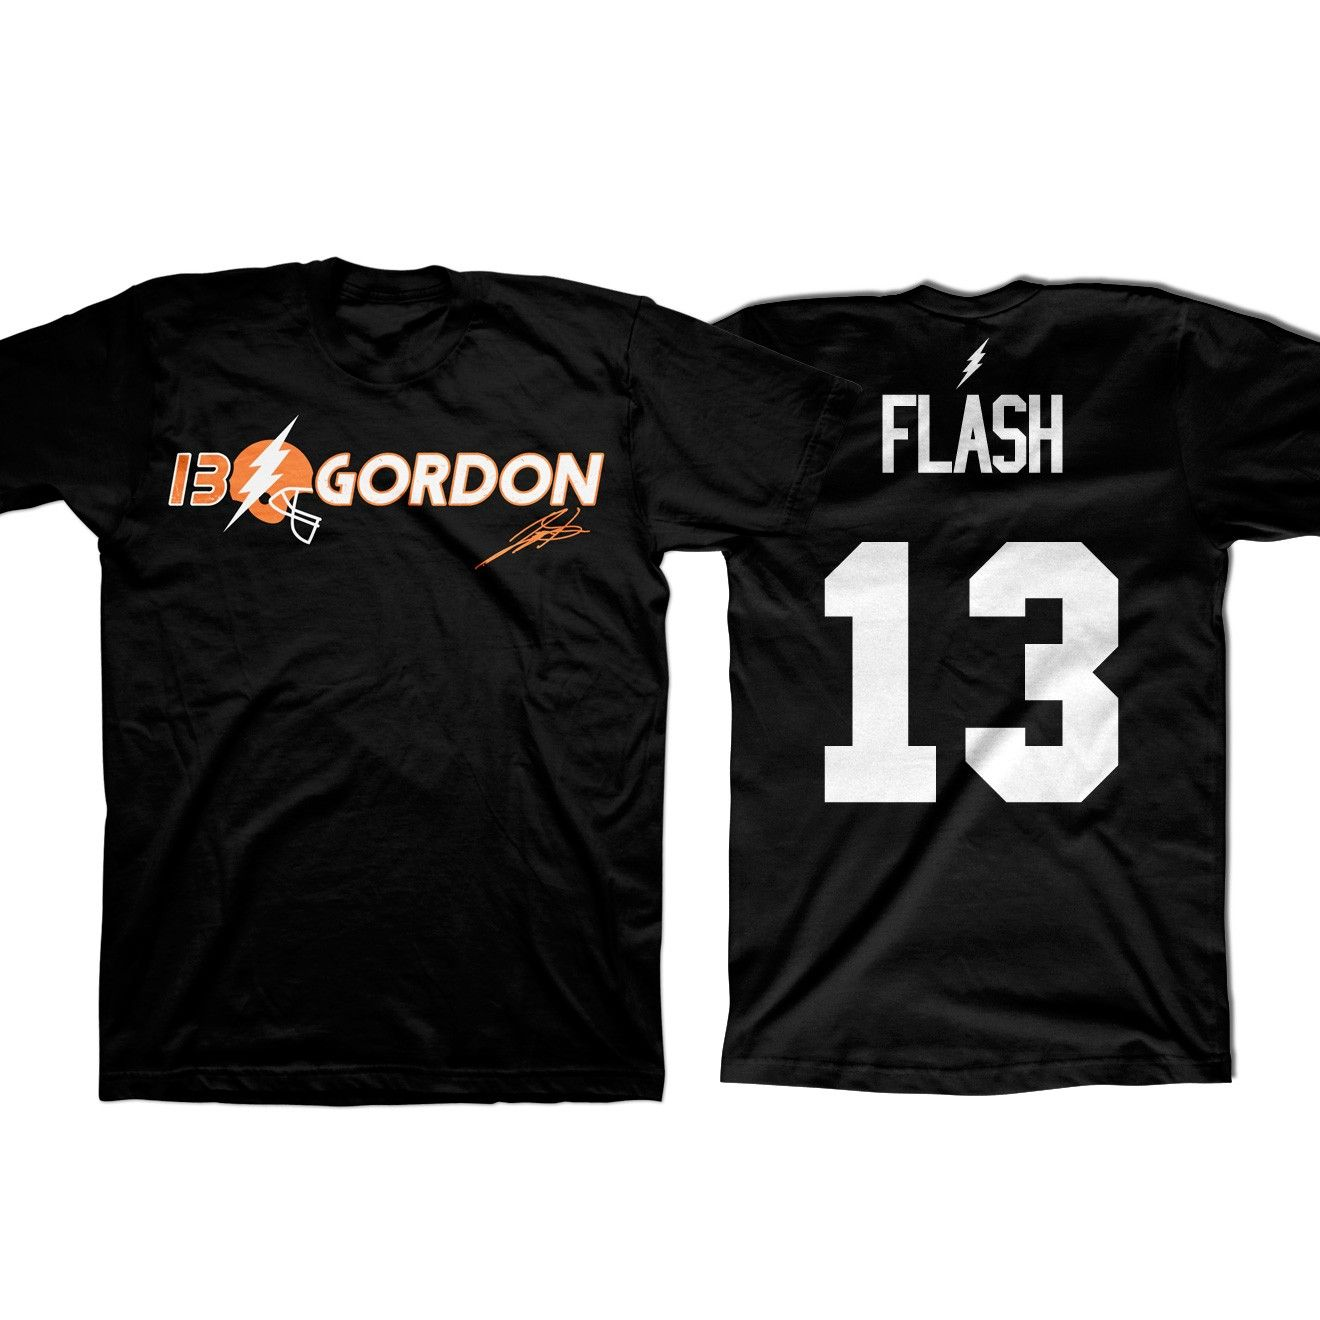 buy online c218e 40ebe Josh Gordon Flash T-shirt #Gordon #Browns #football www ...